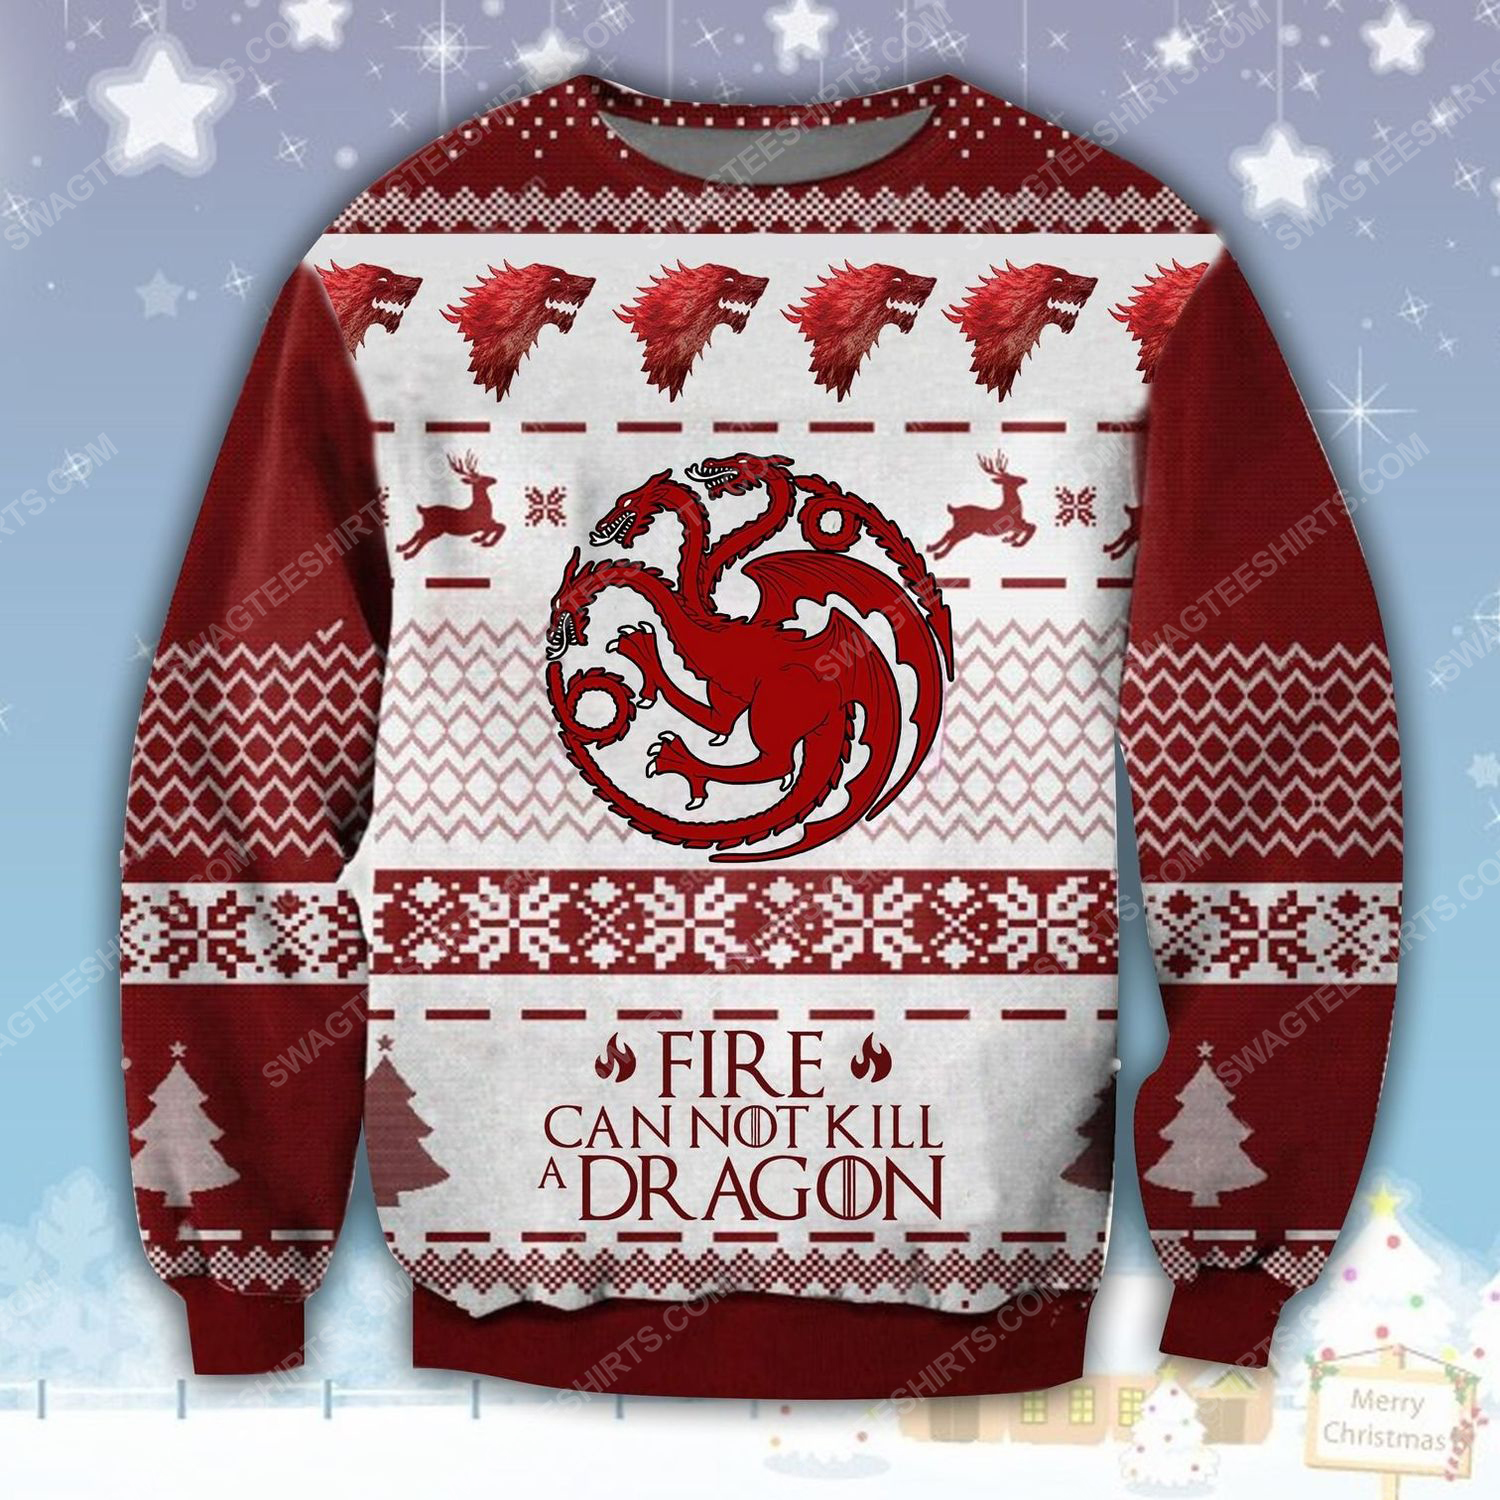 Game of thrones fire cannot kill a dragon ugly christmas sweater - Copy